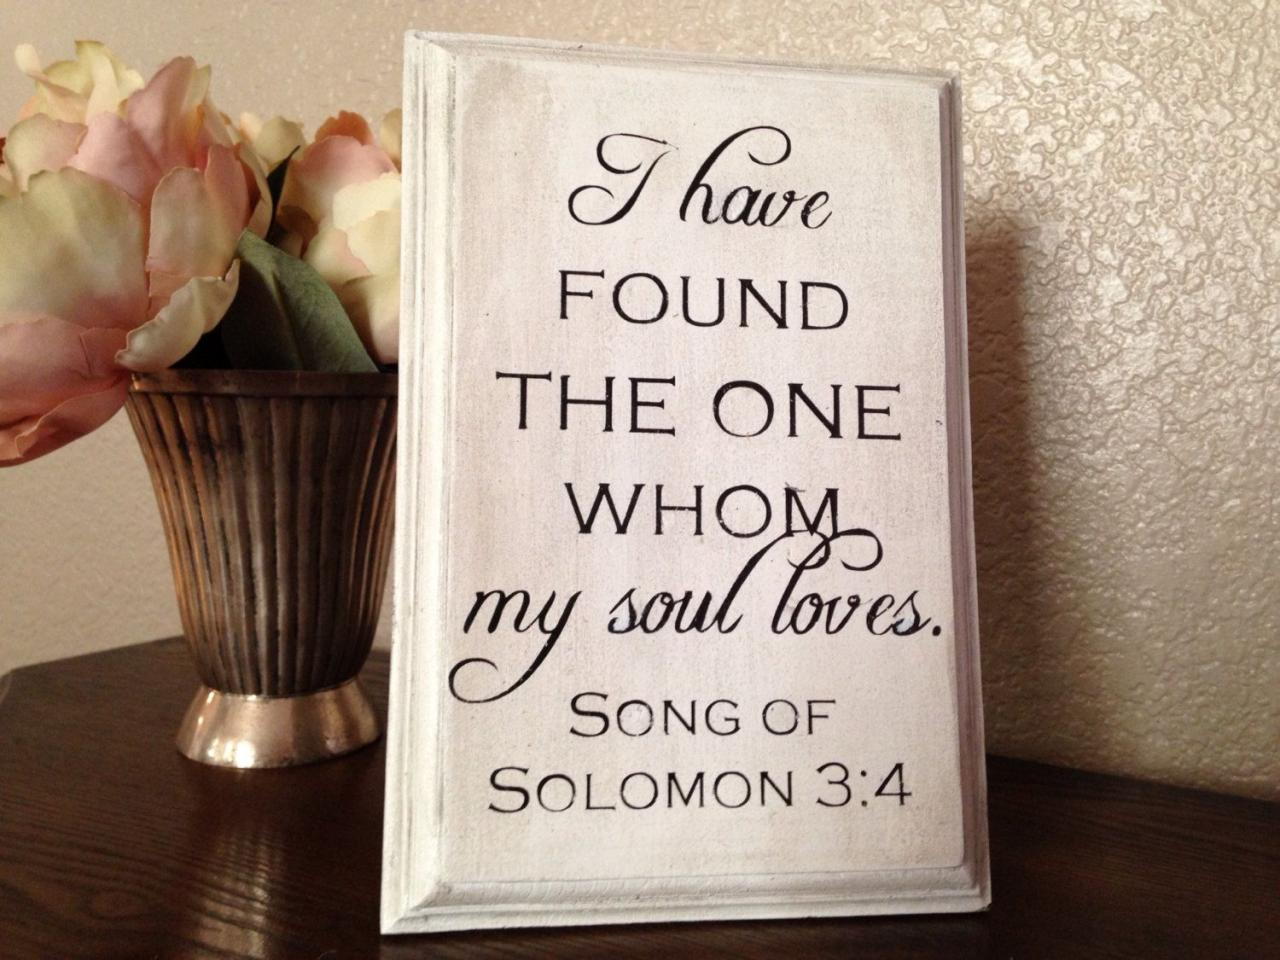 Items Similar To I Have Found The One Whom My Soul Loves Wood Sign Bible Verse Sign Anniversary Gift Wedding Gift Hand Painted Sign On Etsy